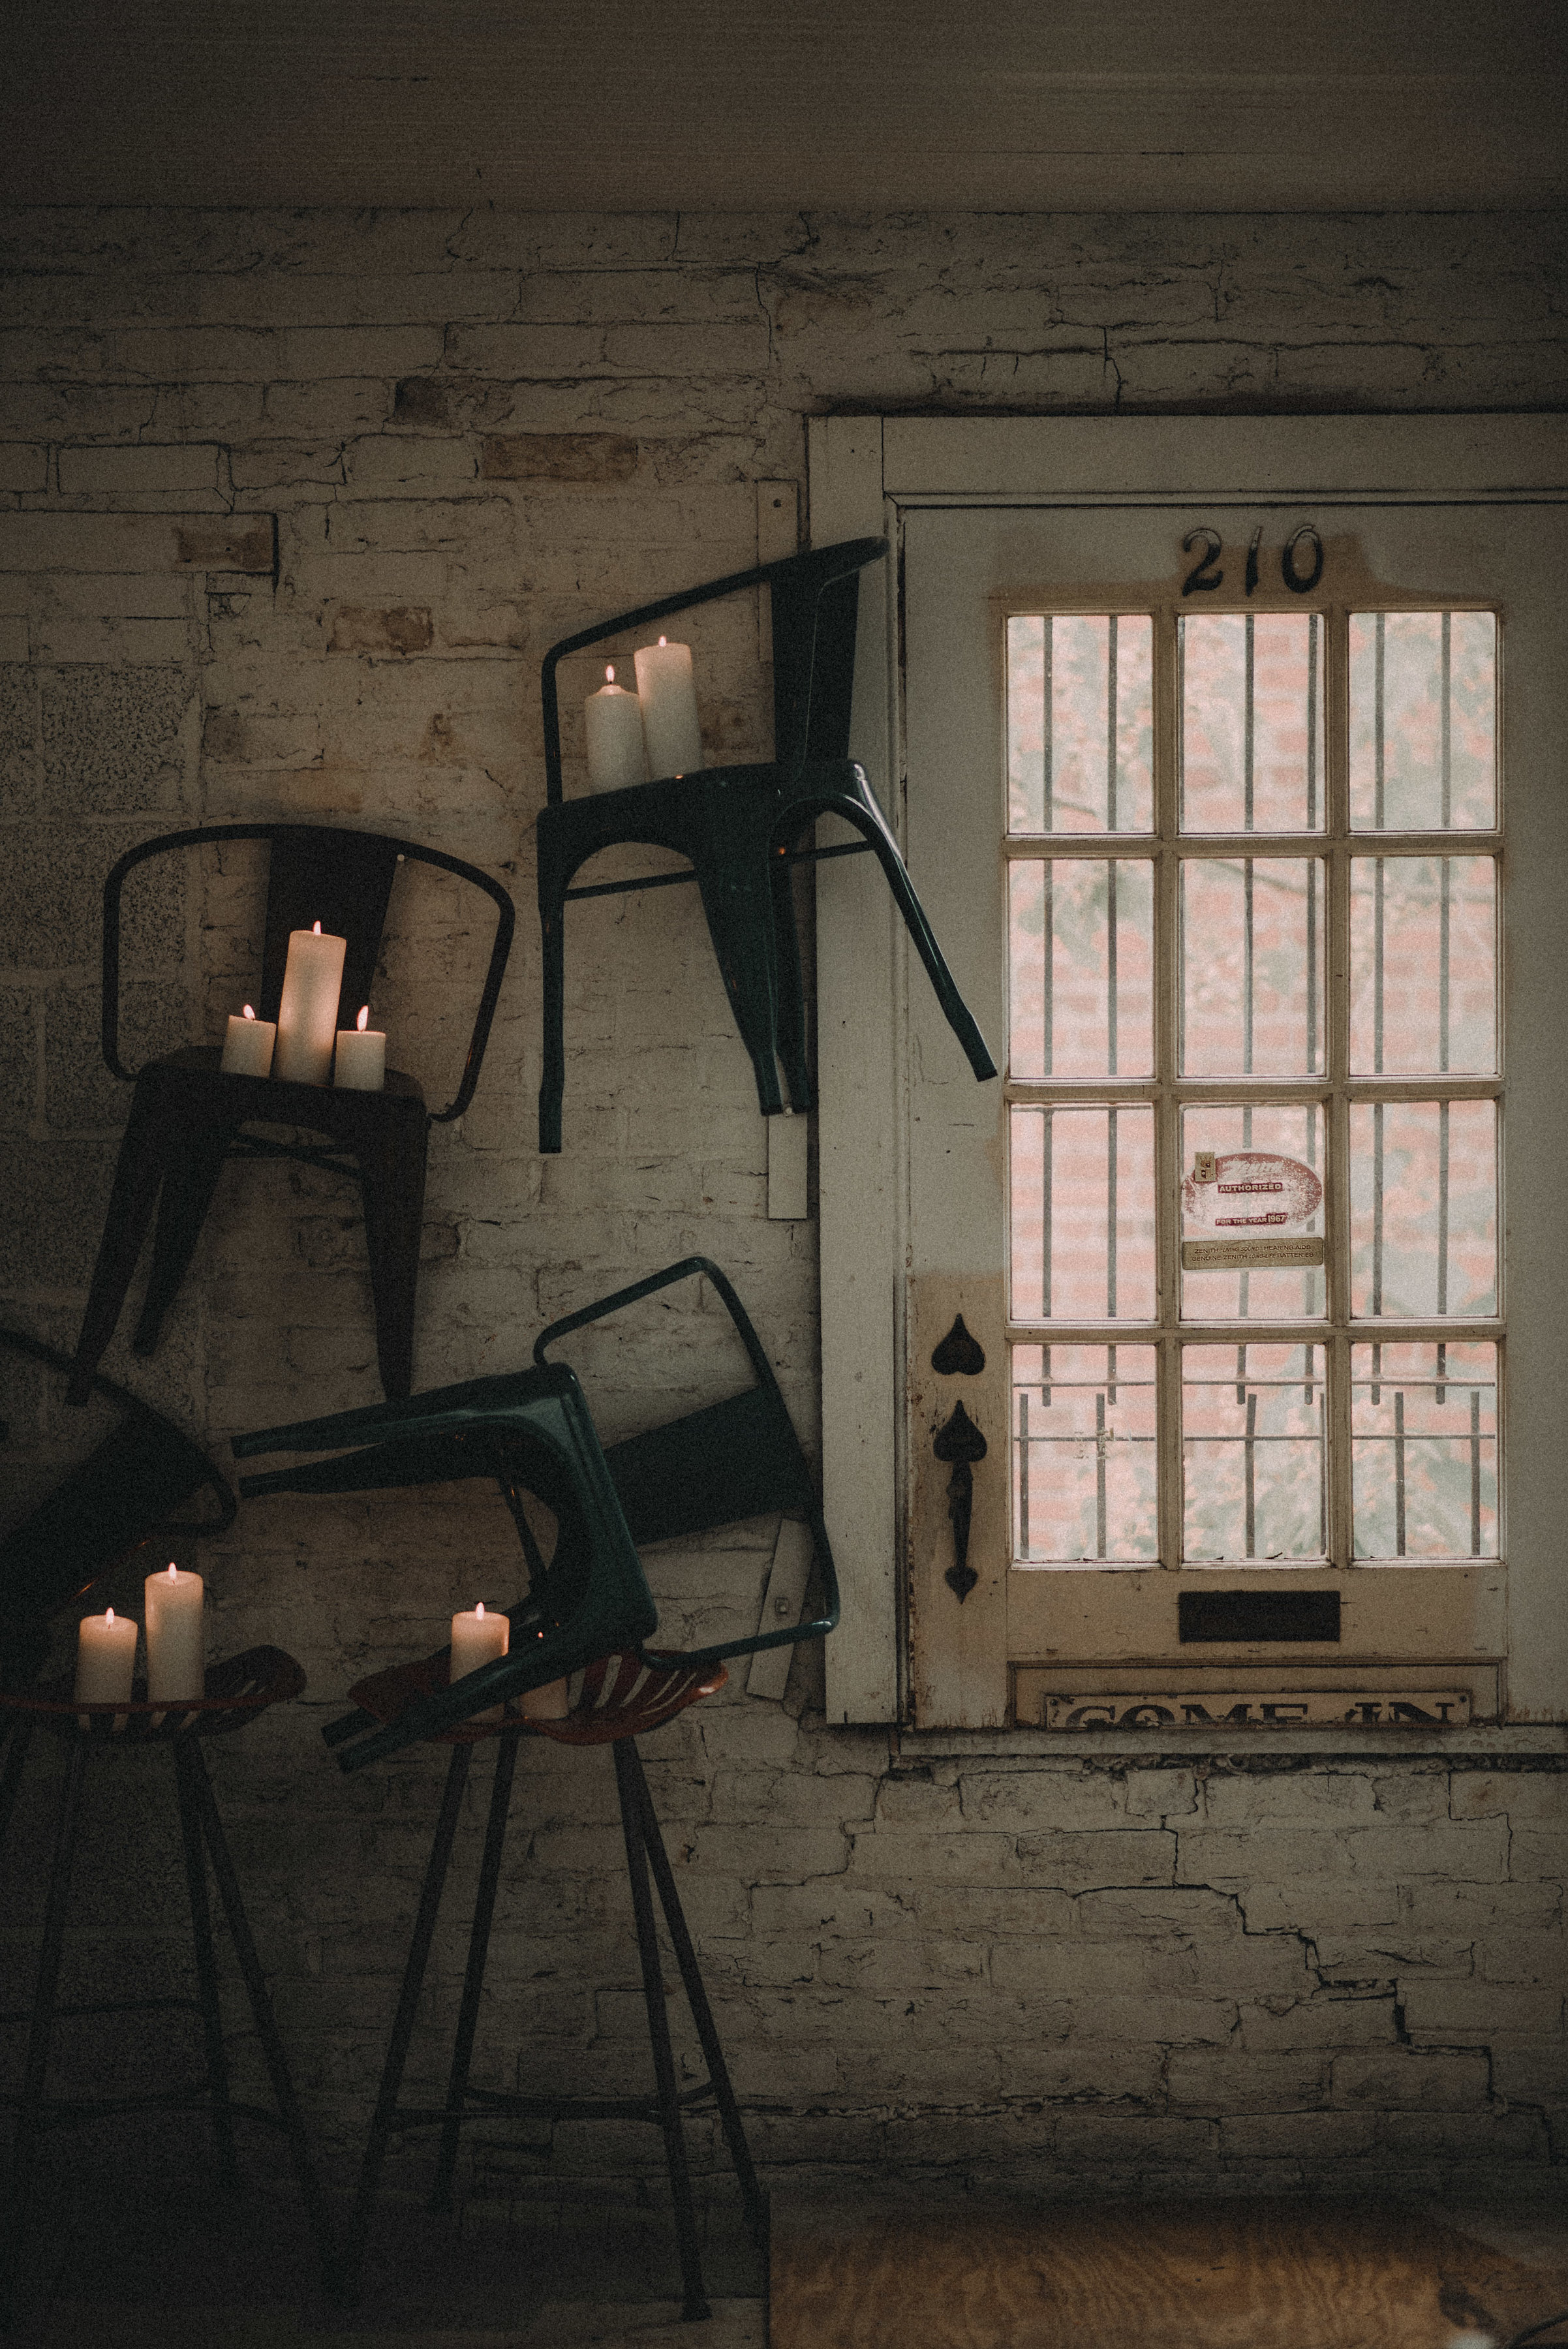 Chairs and candles levitating